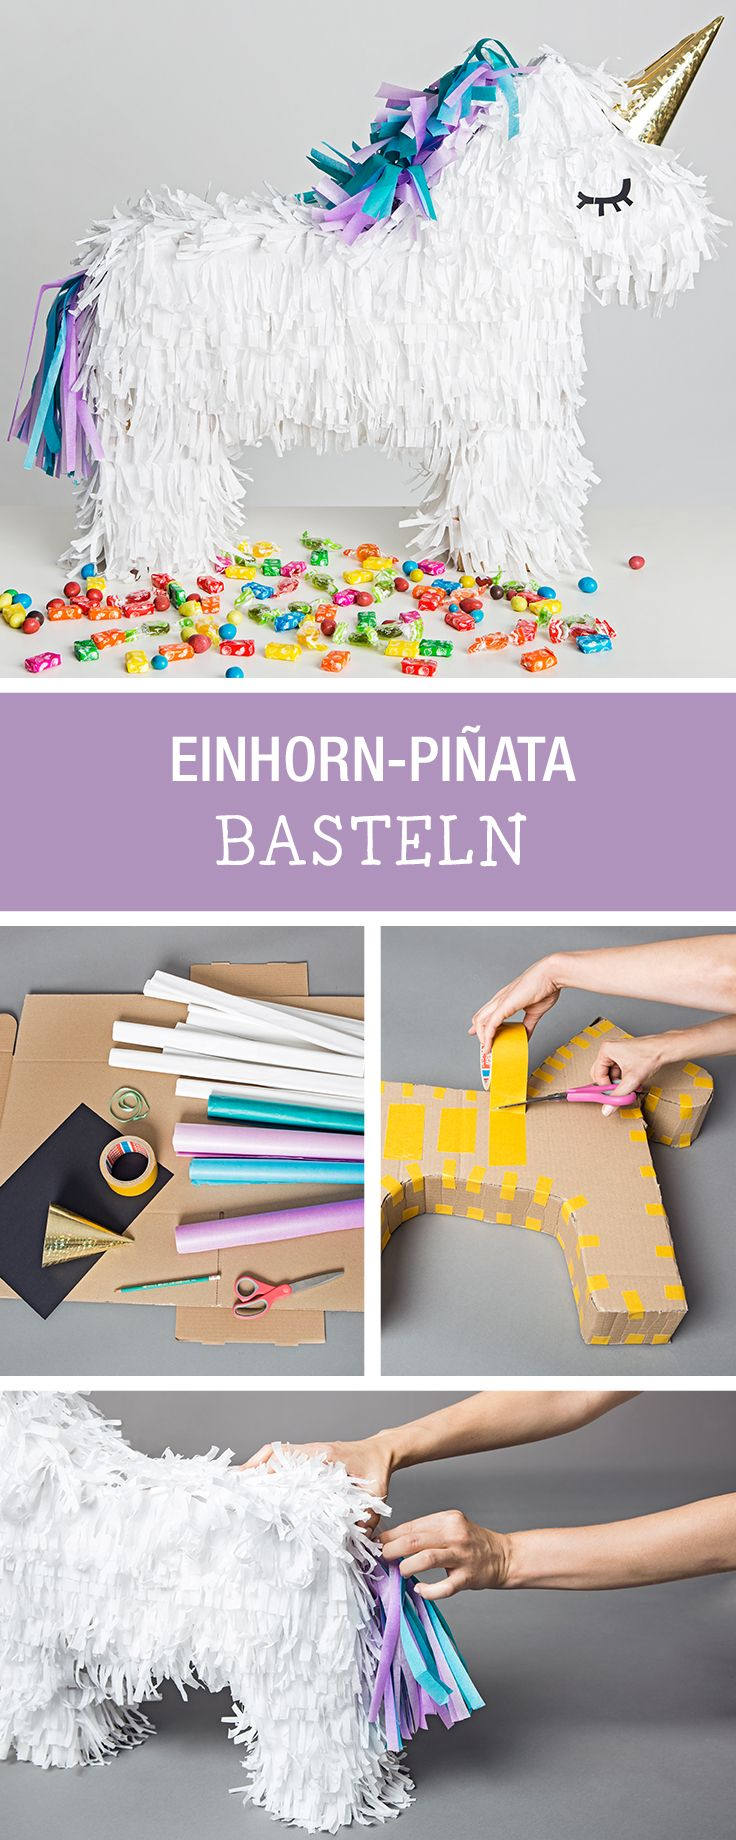 diy anleitung einhorn pi ata basteln via. Black Bedroom Furniture Sets. Home Design Ideas